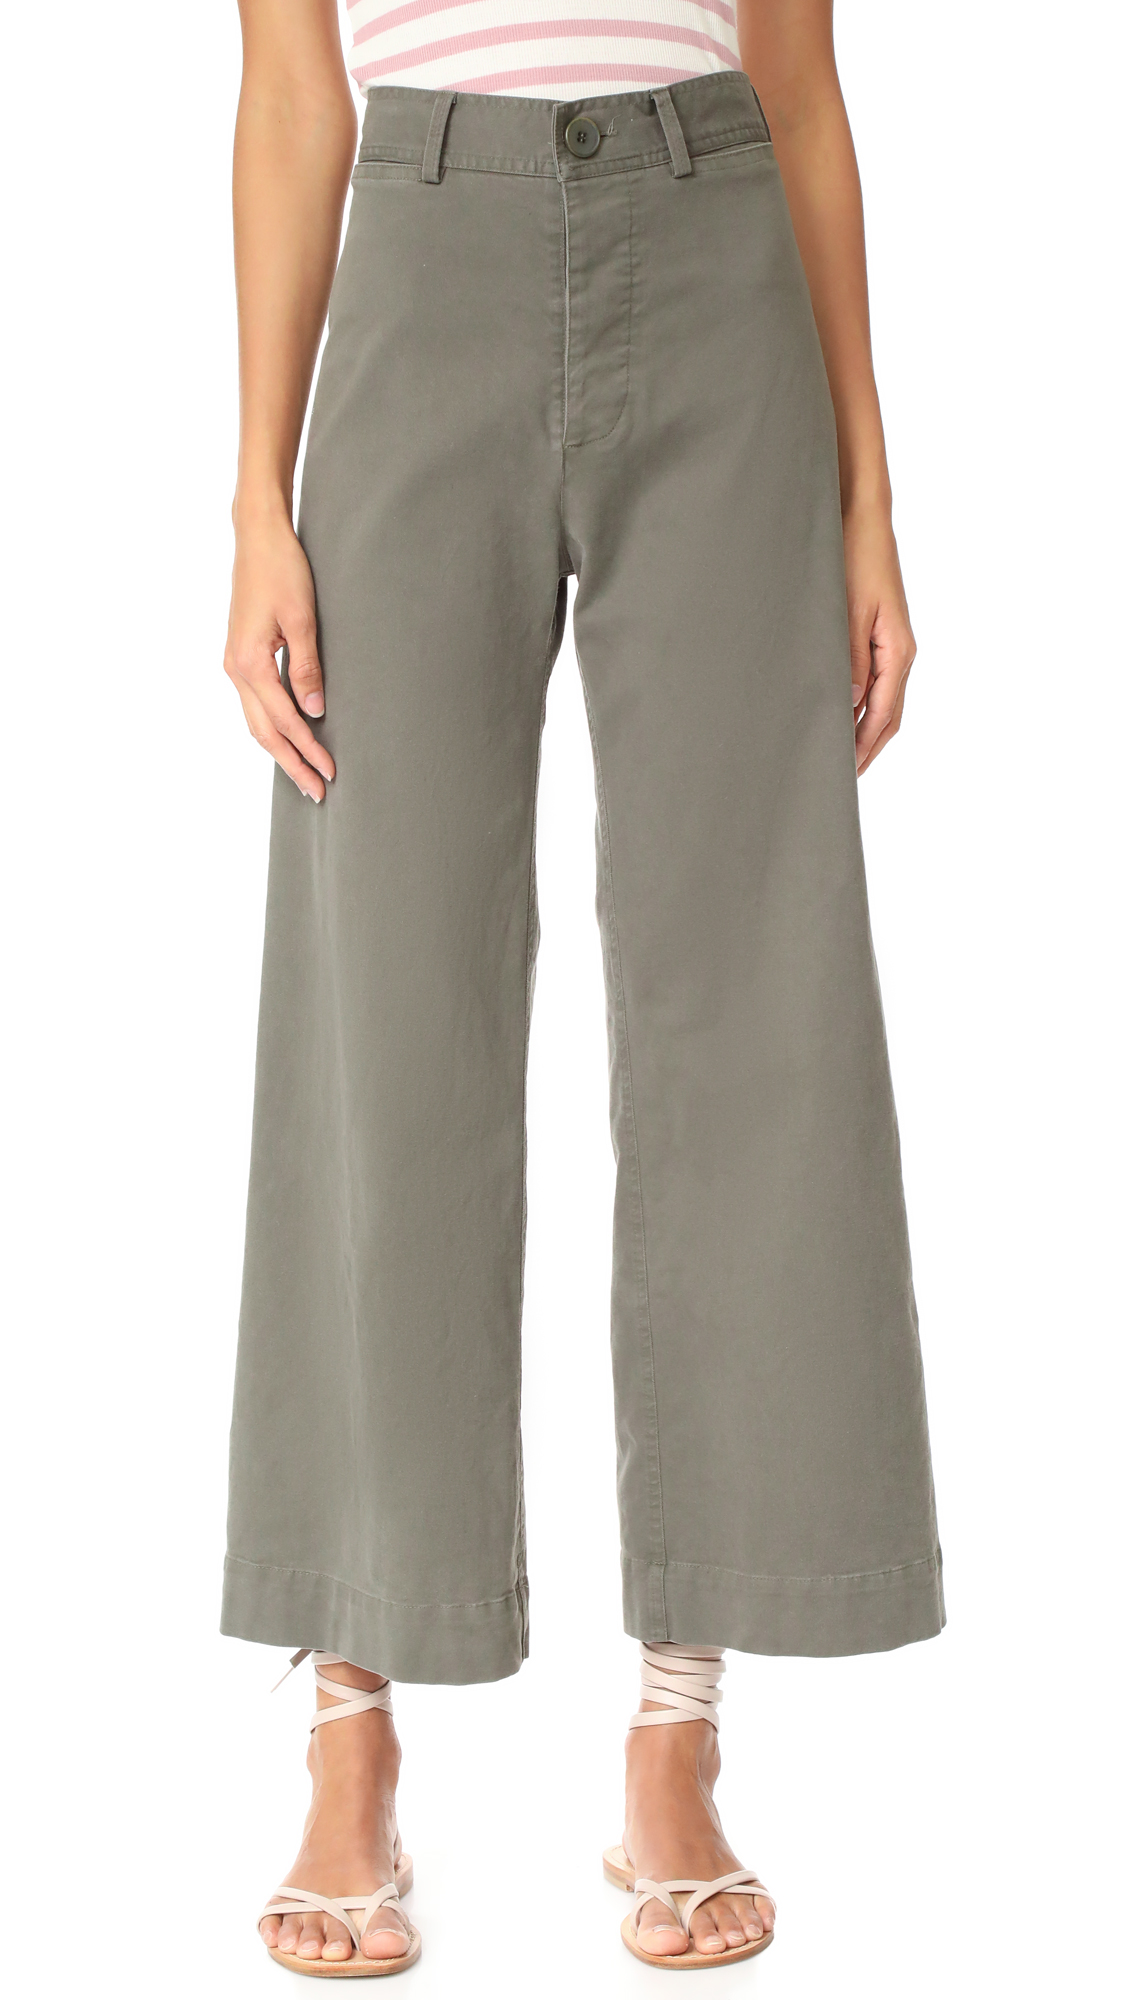 Emerson Thorpe Ryan High Waisted Wide Leg Pants - Army